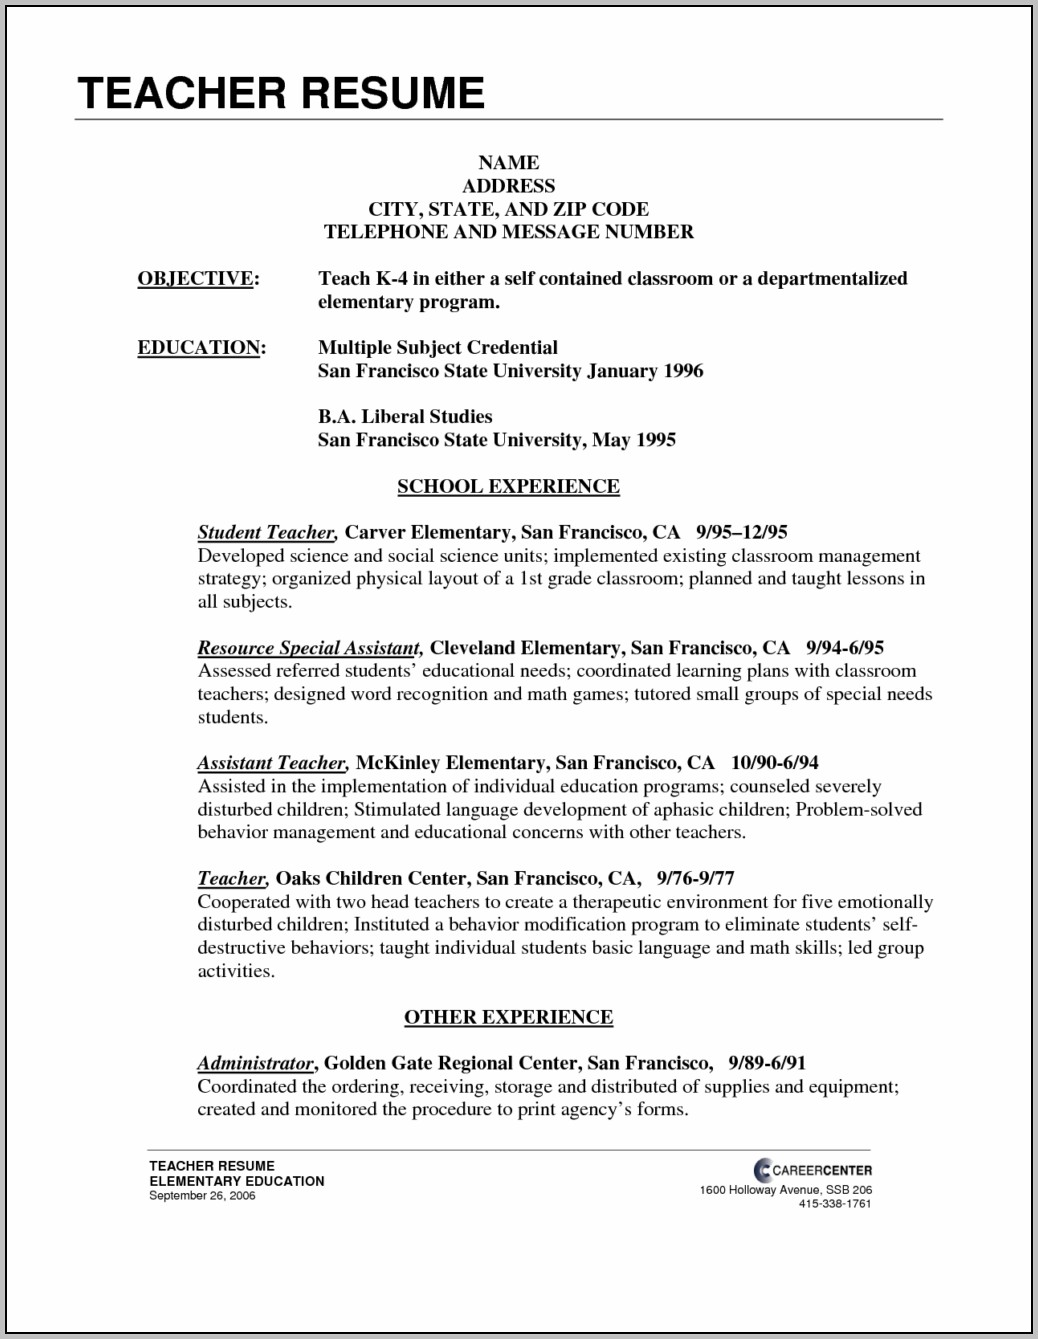 Free Resume Template For Teaching Position